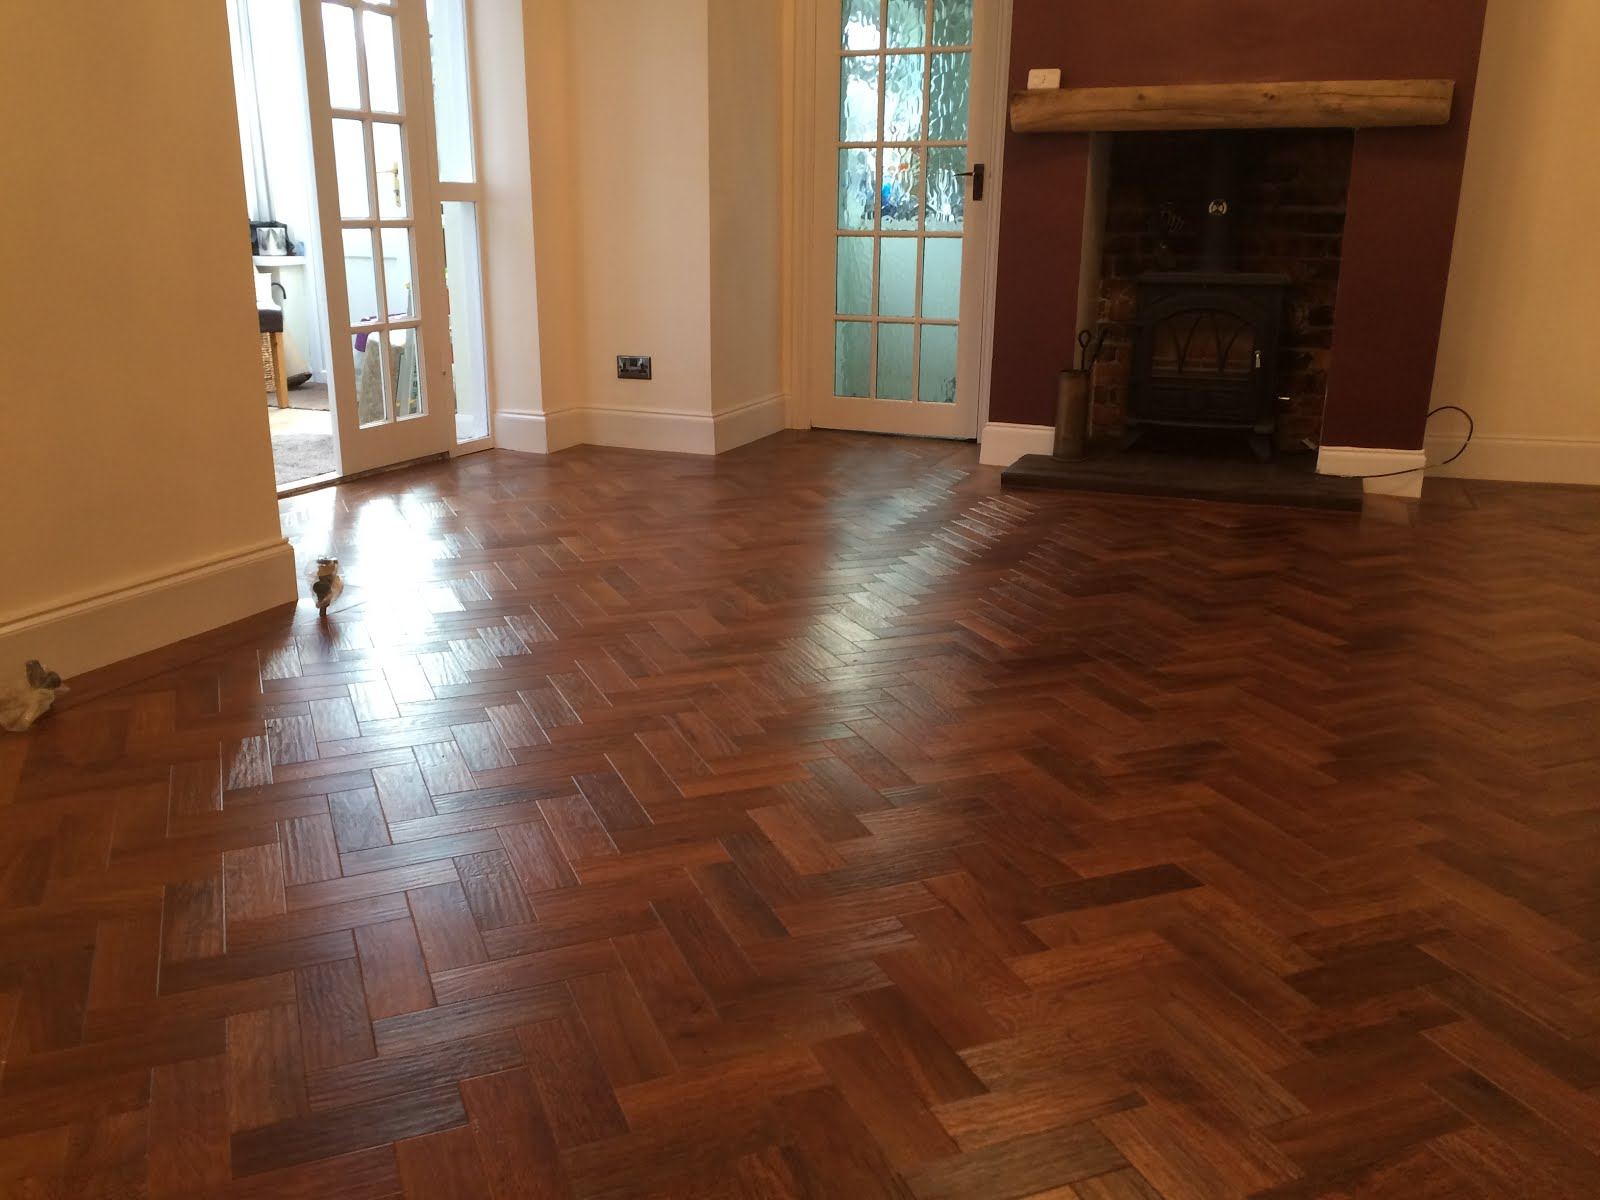 Specialist floors north east vinyl flooring and dampness for Floor and flooring